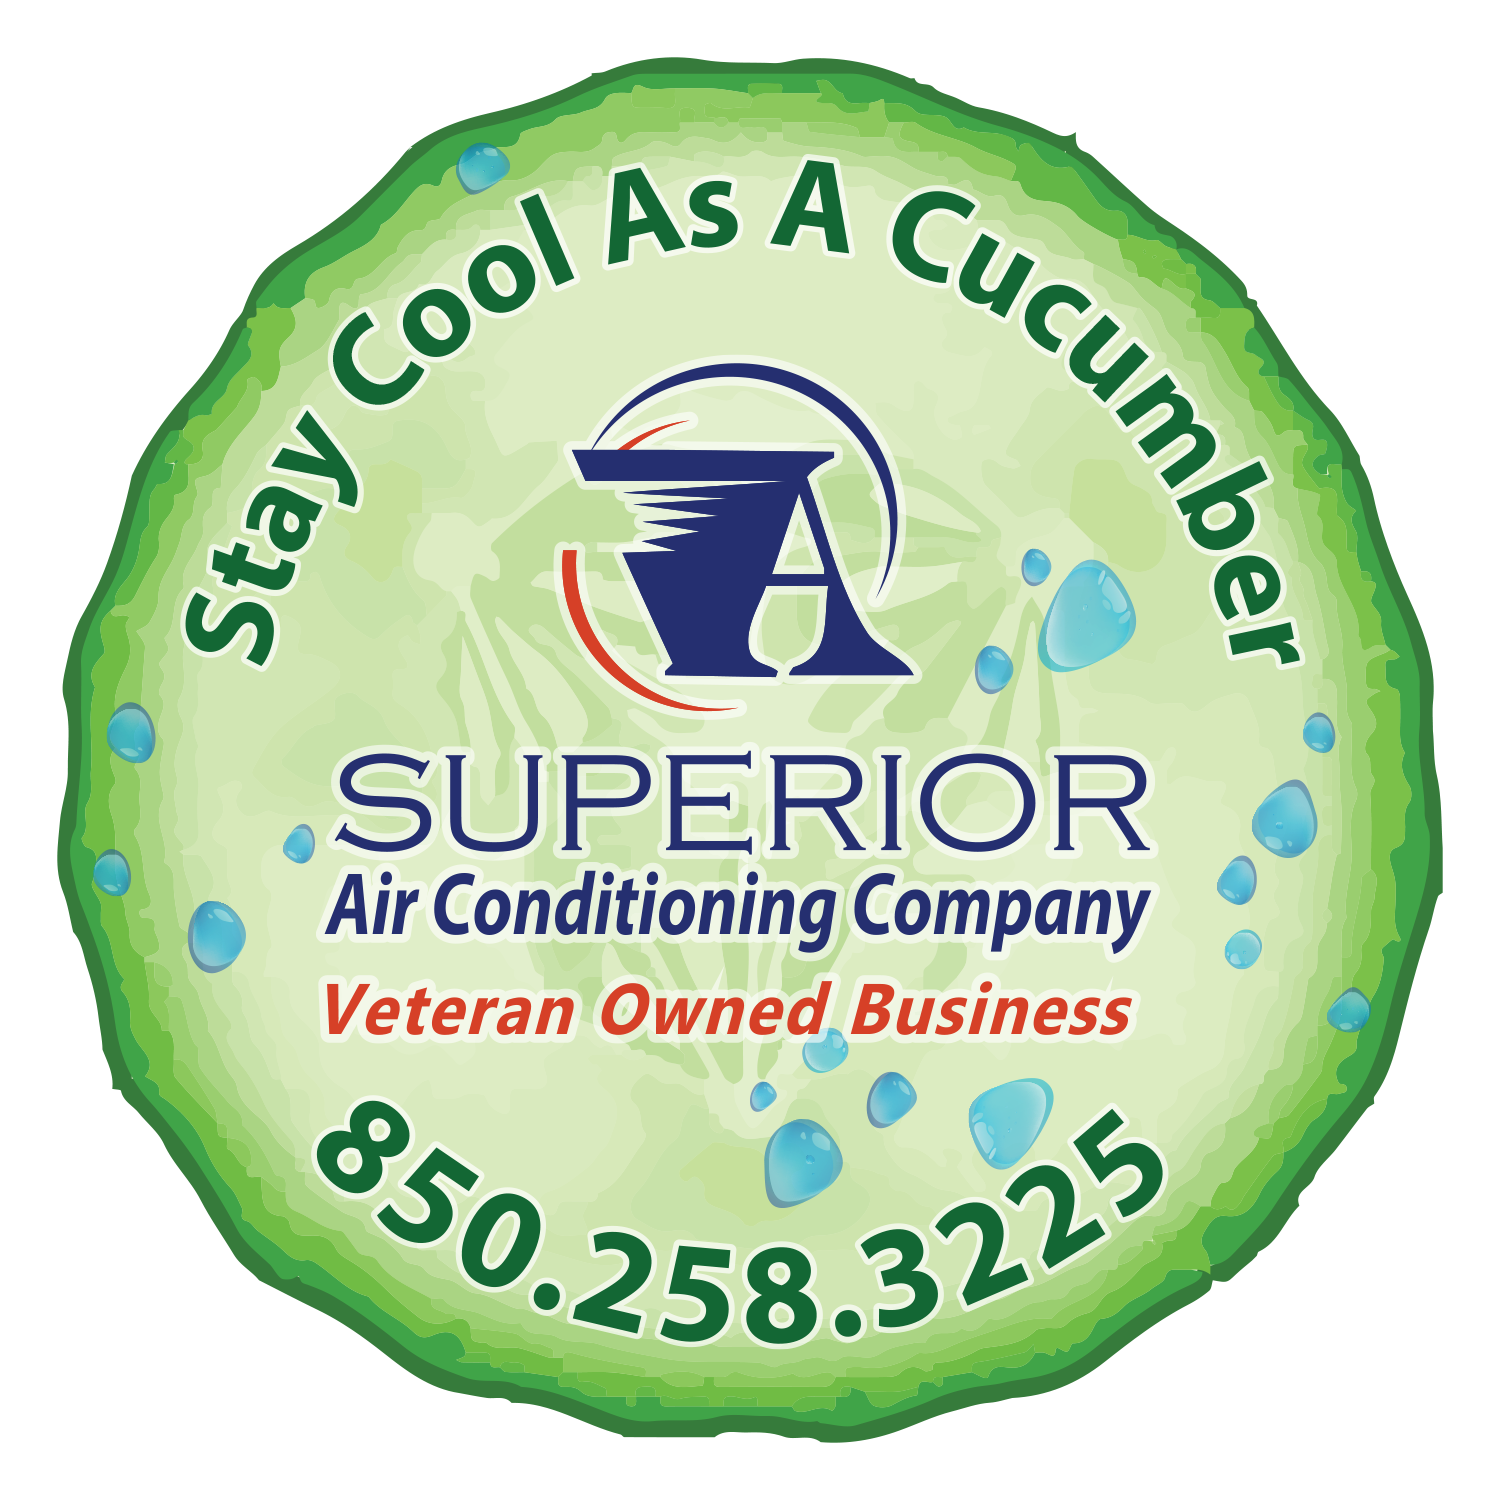 A Superior Air Conditioning Compay